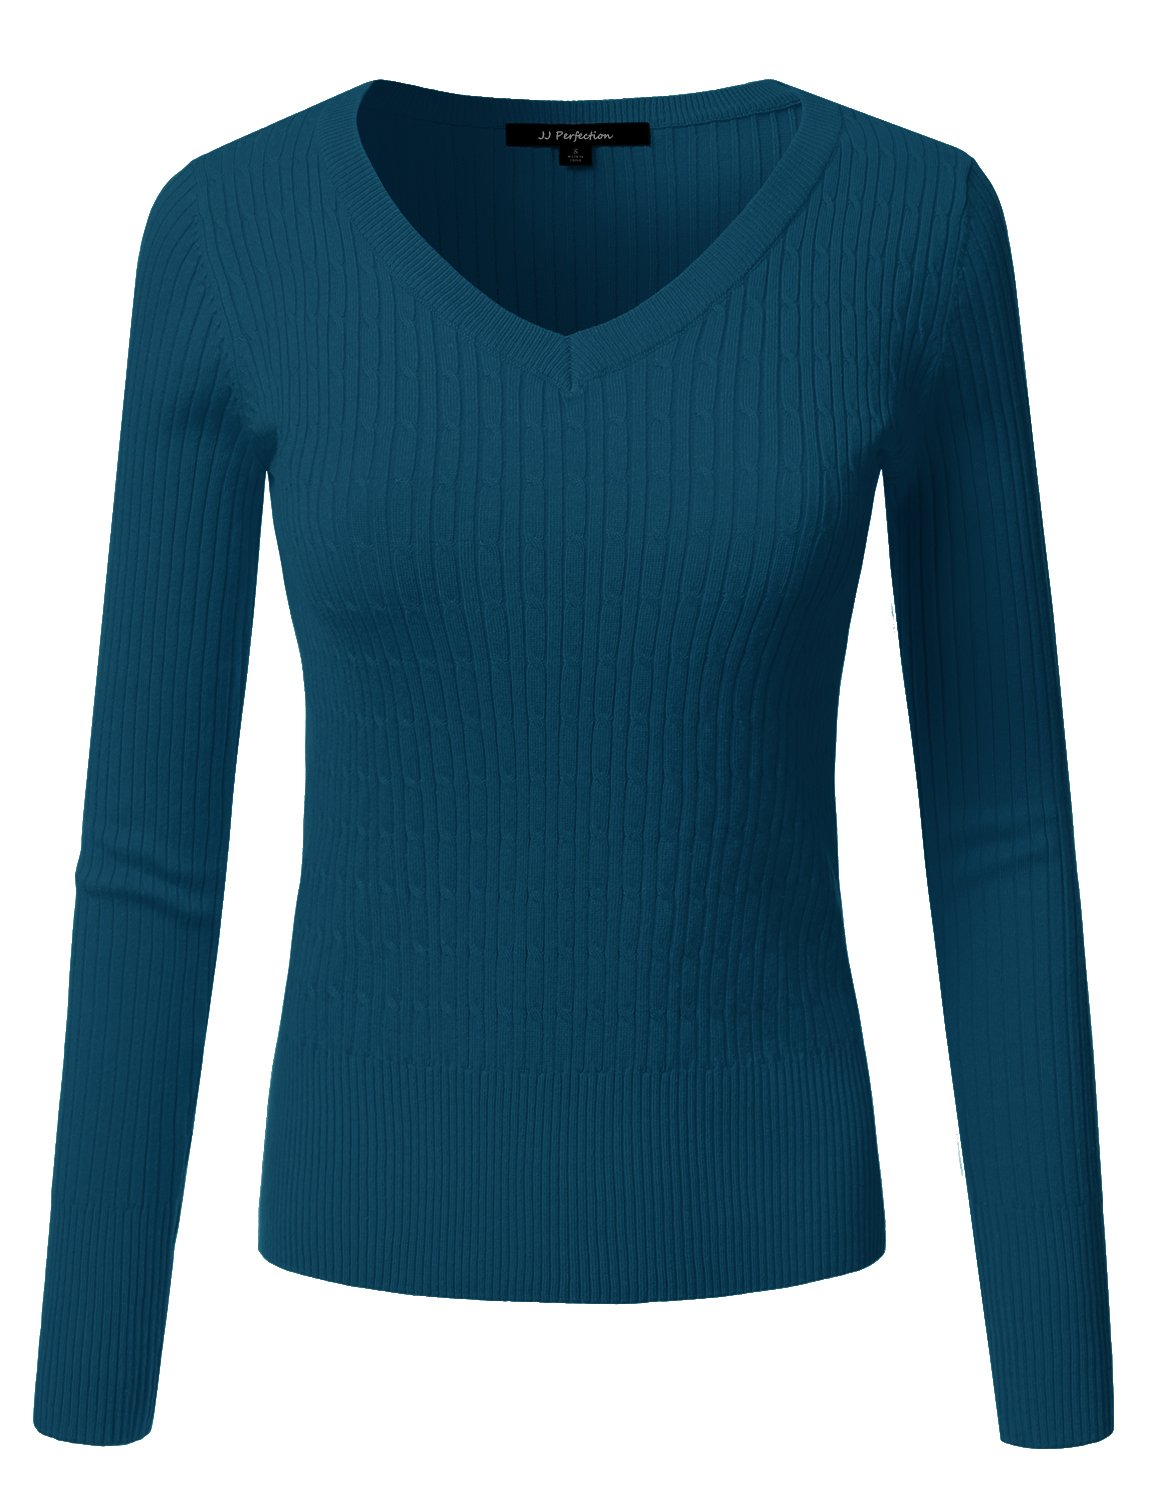 JJ Perfection Women's Classic Long Sleeve V-Neck Cable Knit Sweater Deepteal 2XL